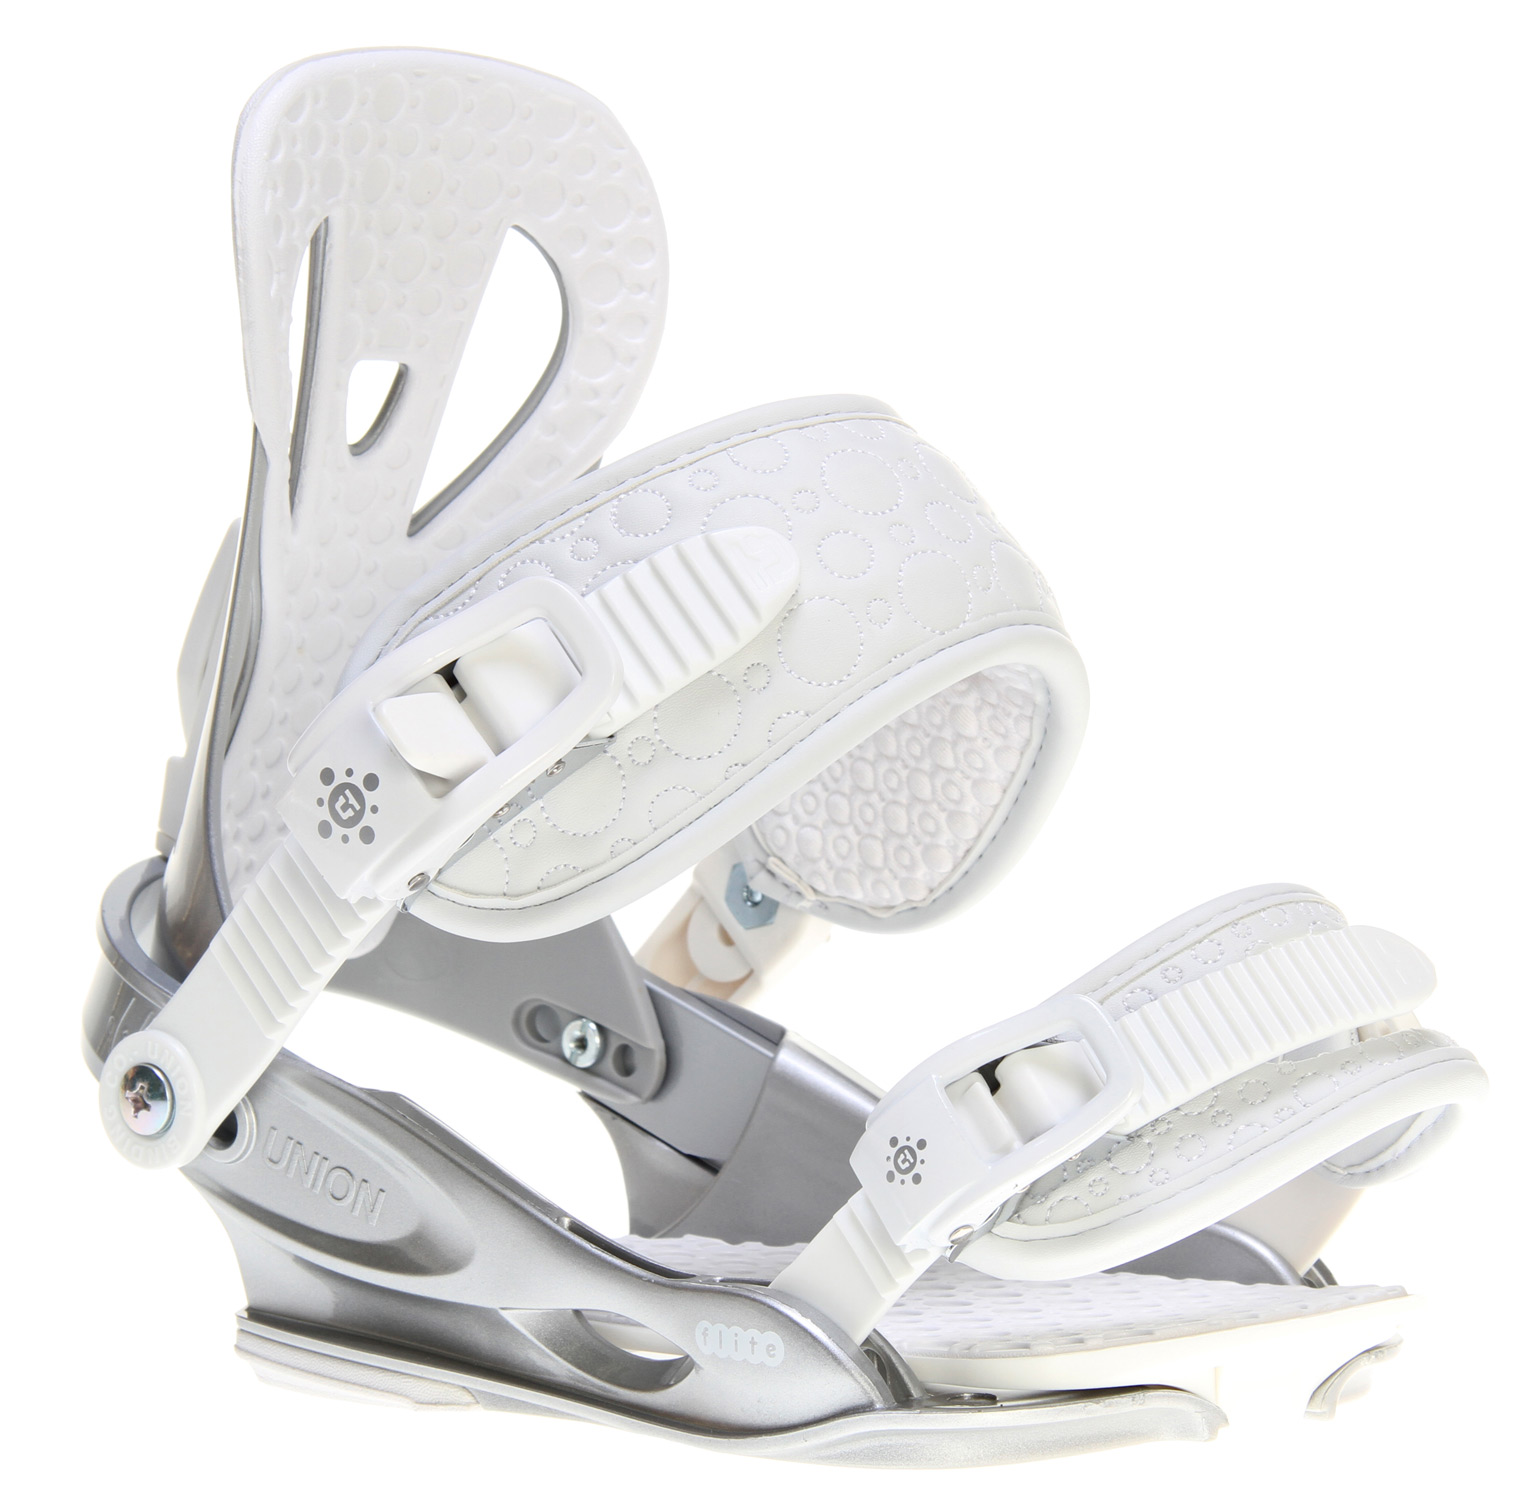 Snowboard Like, so lightKey Features of the Union Flite Lady Snowboard Bindings: Women's Speci?c Flite Baseplate Injected Eva Bushings Extruded Aluminum Heelcups All New Direct-Connect Strap System Pu Leather Straps Tool-Free Size Adjustment Injected Aluminum Buckles Universal Disks Grade 8.8 Hardware Lifetime Warranty Base - $103.95